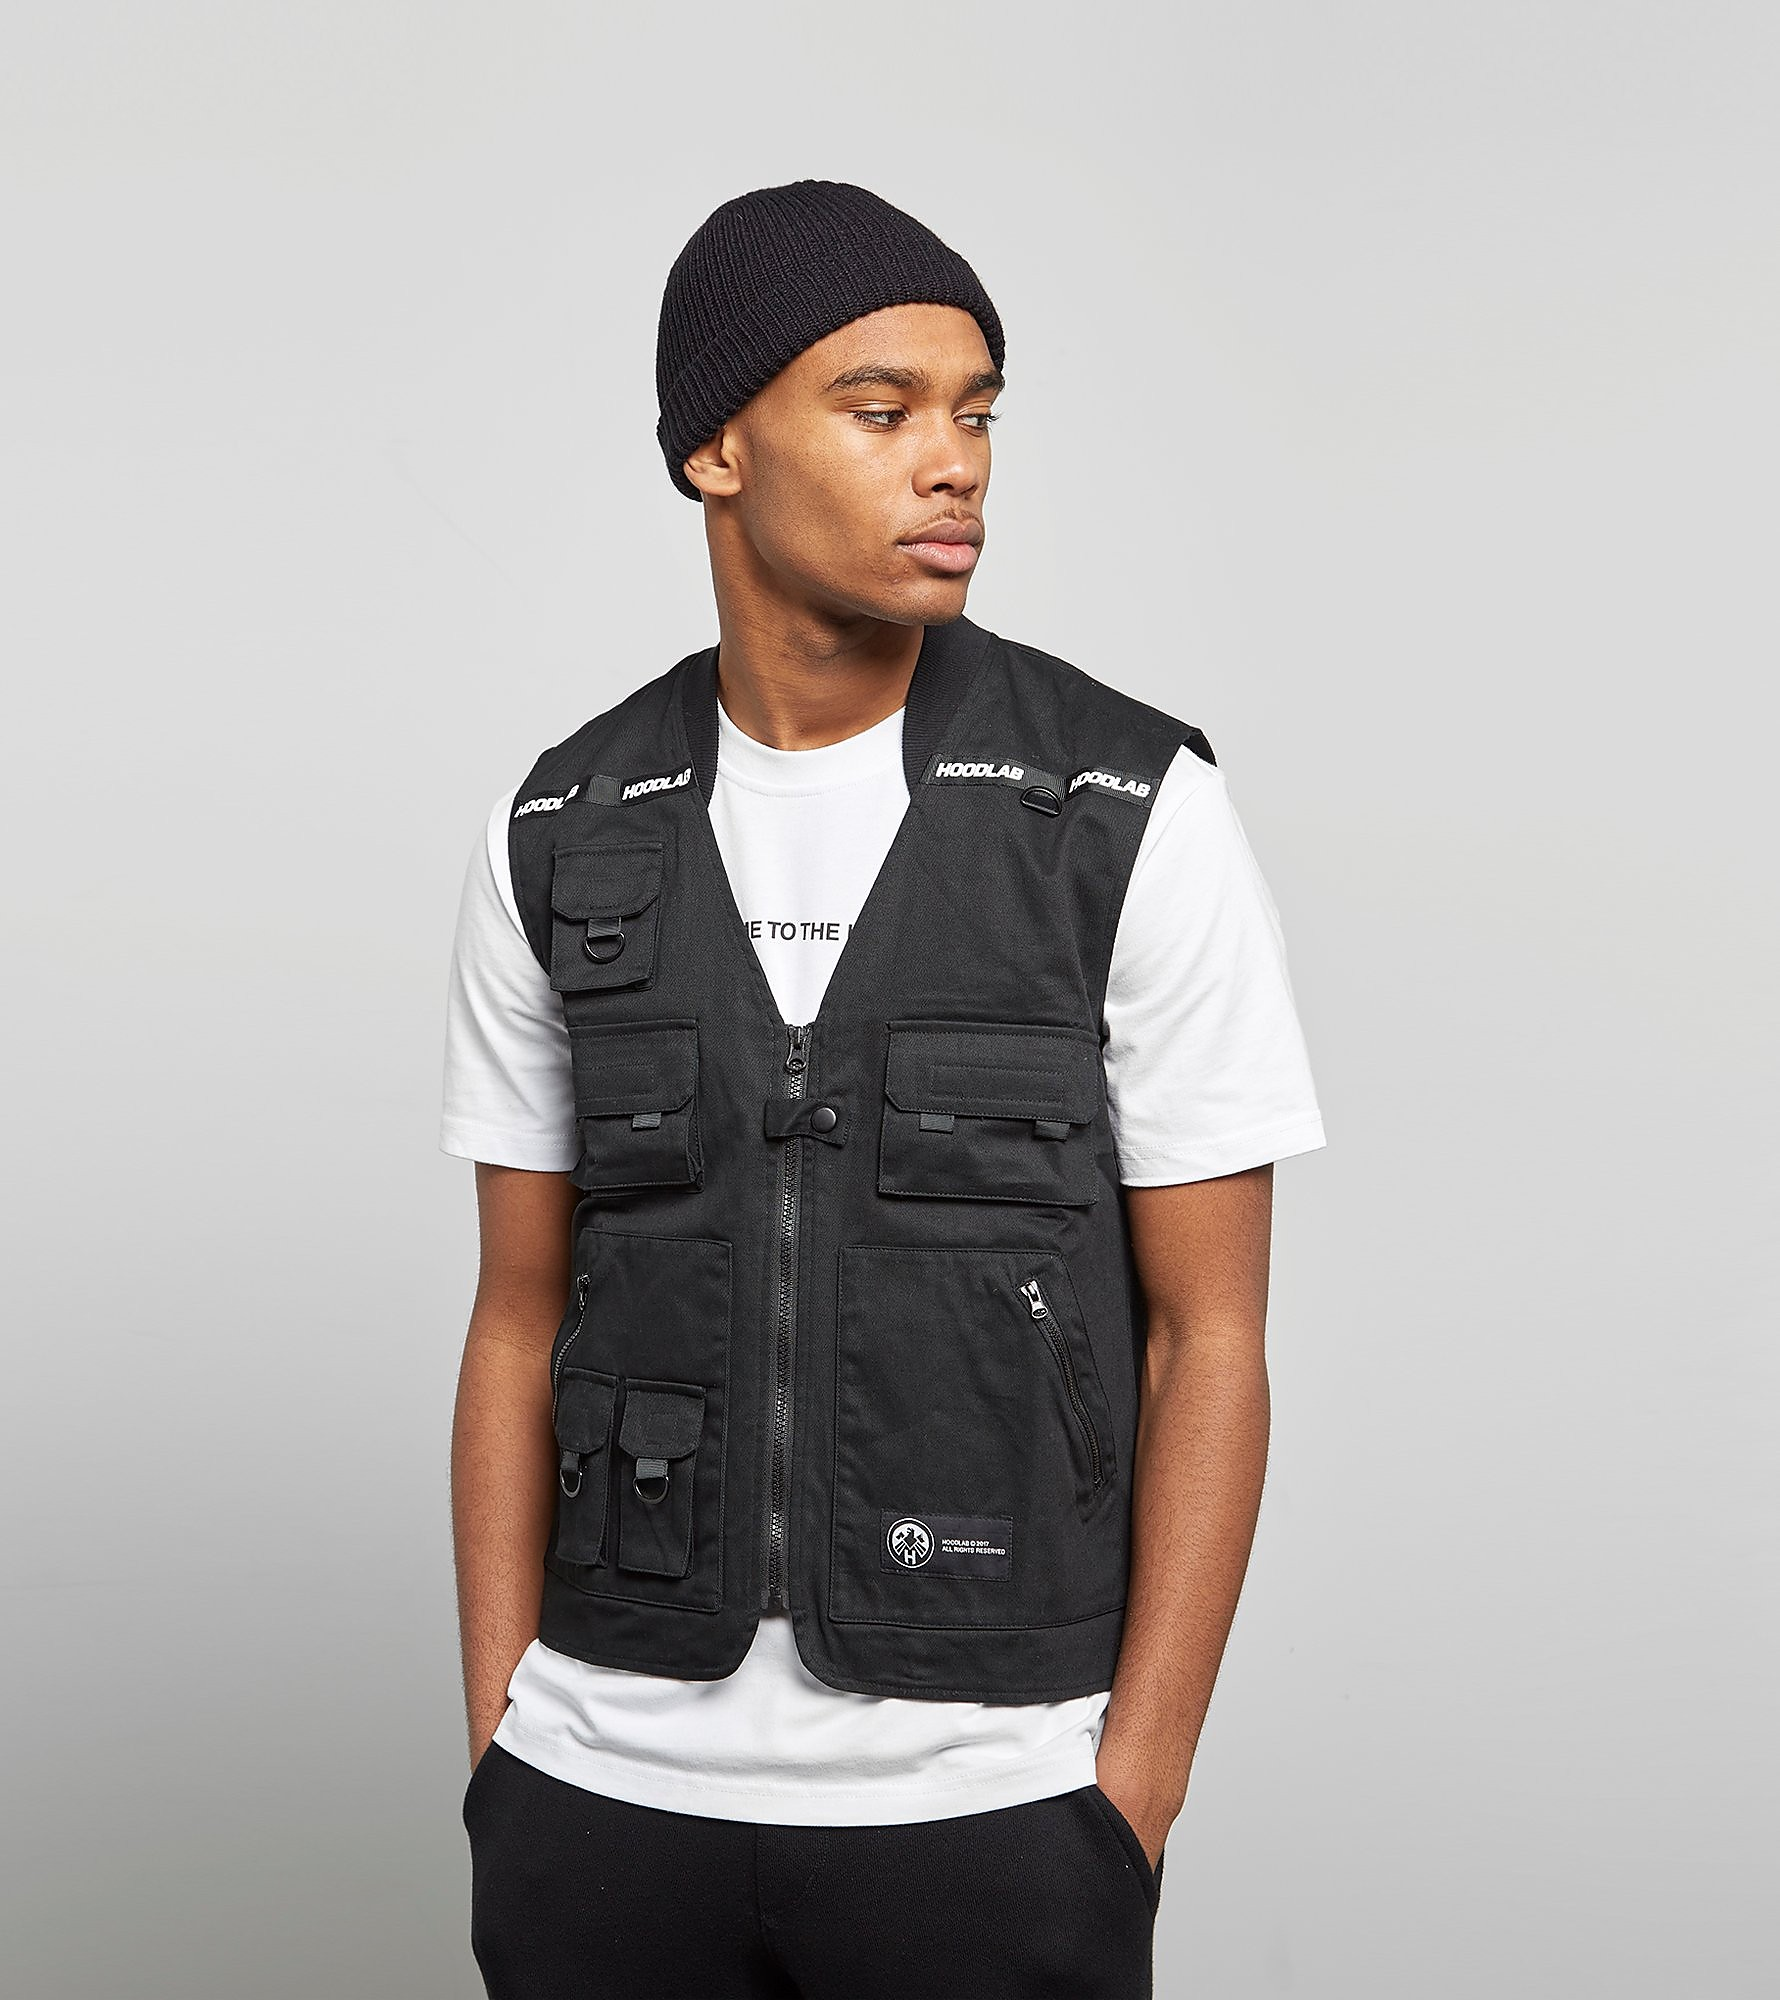 Hoodlab Tactical Vest - size? Exclusive